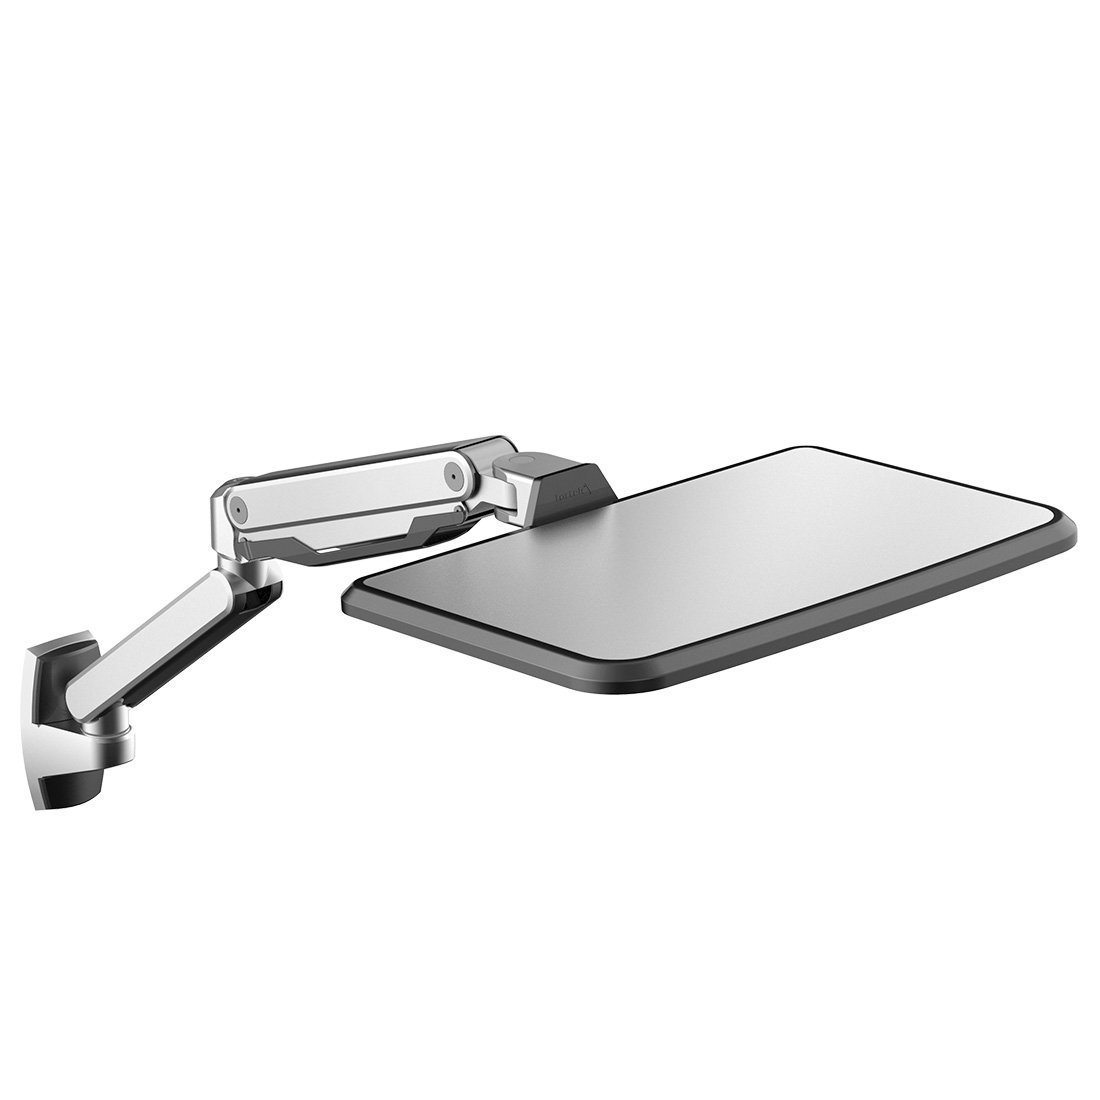 Loctek WS2L Sit Stand Workstation Height Adjustment Ergonomic Laptop Wall Mount Arm for 10'' - 17'' Notebook MacBook Air, MacBook Pro, Support 2.2-15.4lbs